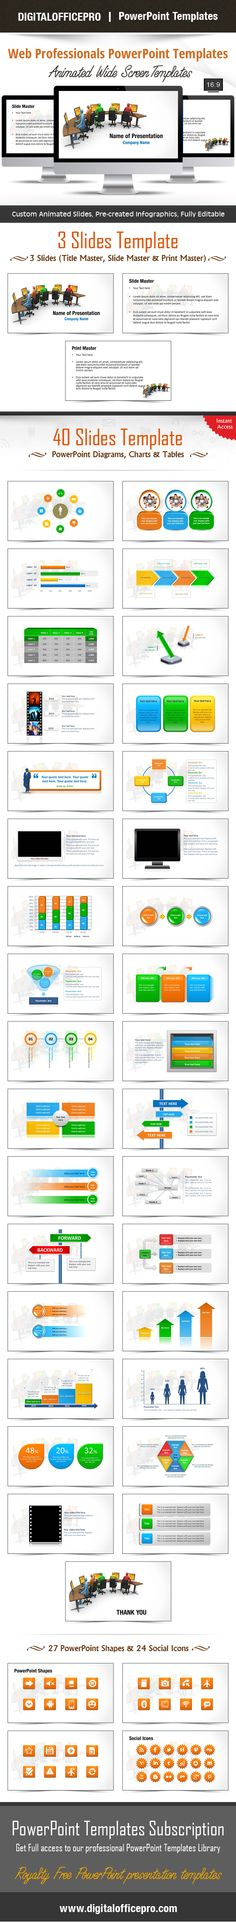 Simple powerpoint template with clean and elegant easy to edit impress and engage your audience with web professionals powerpoint template and web professionals powerpoint backgrounds from toneelgroepblik Choice Image